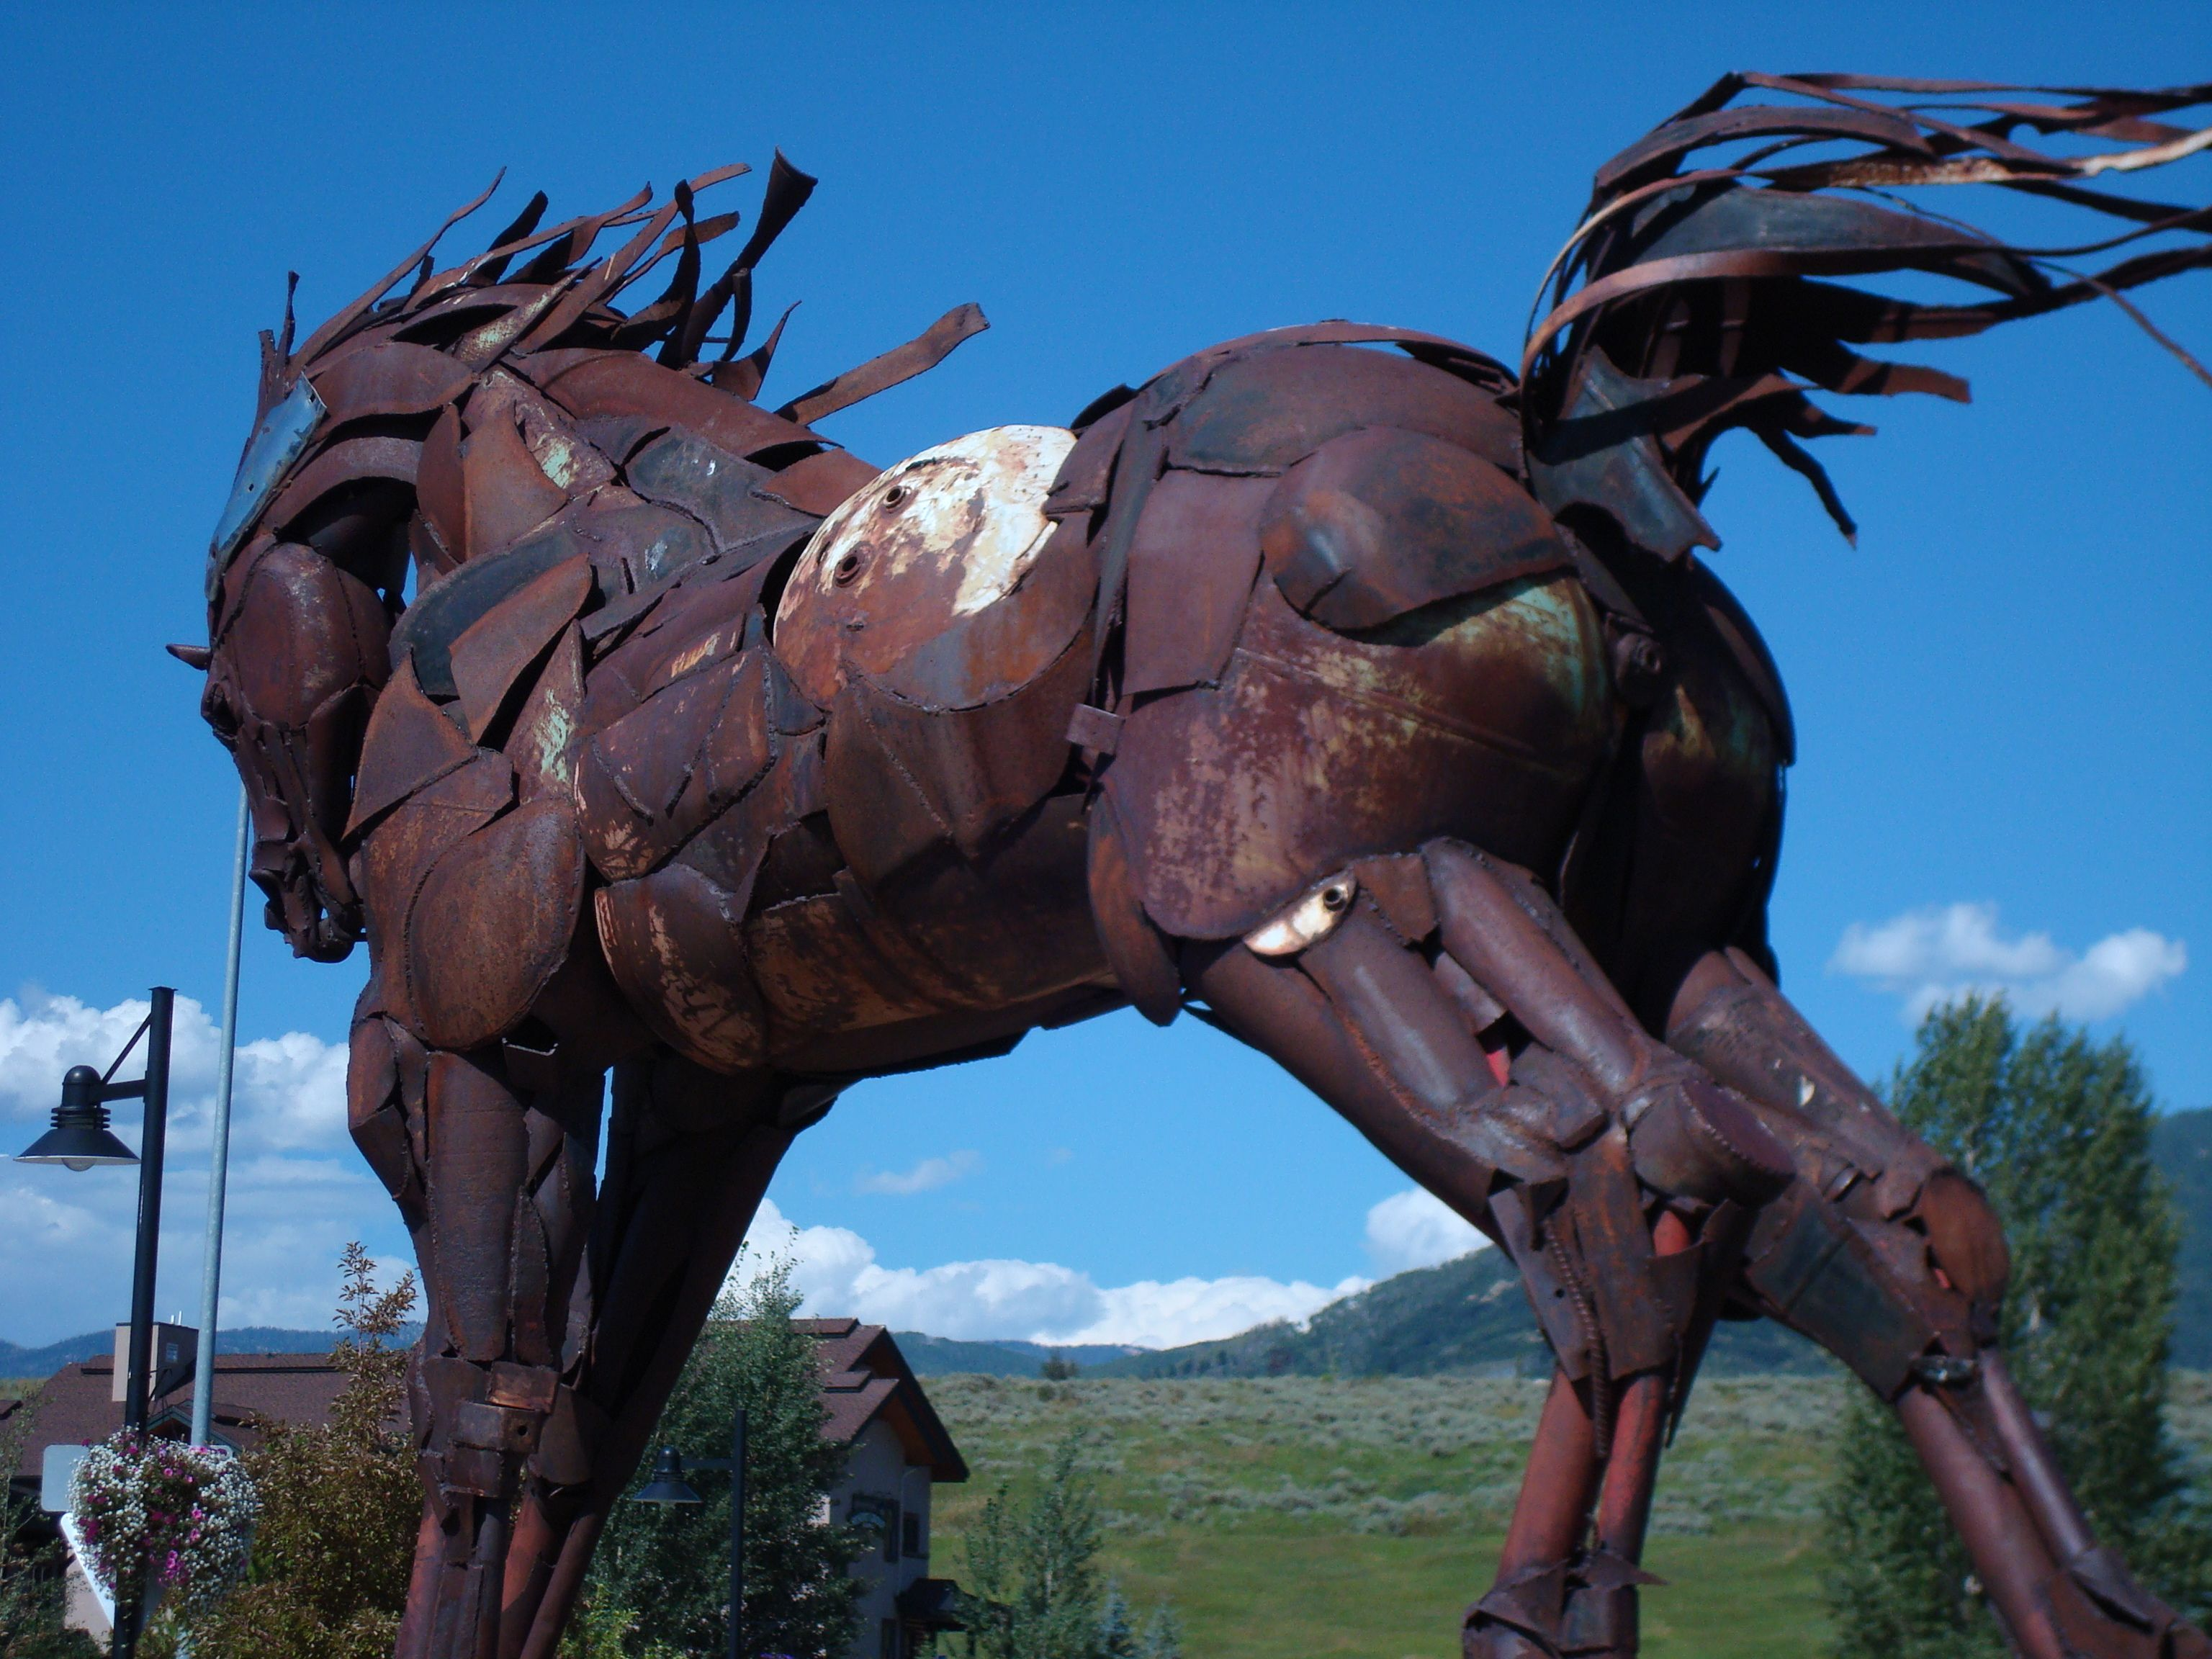 Metal horse - Steamboat Springs, Colorado